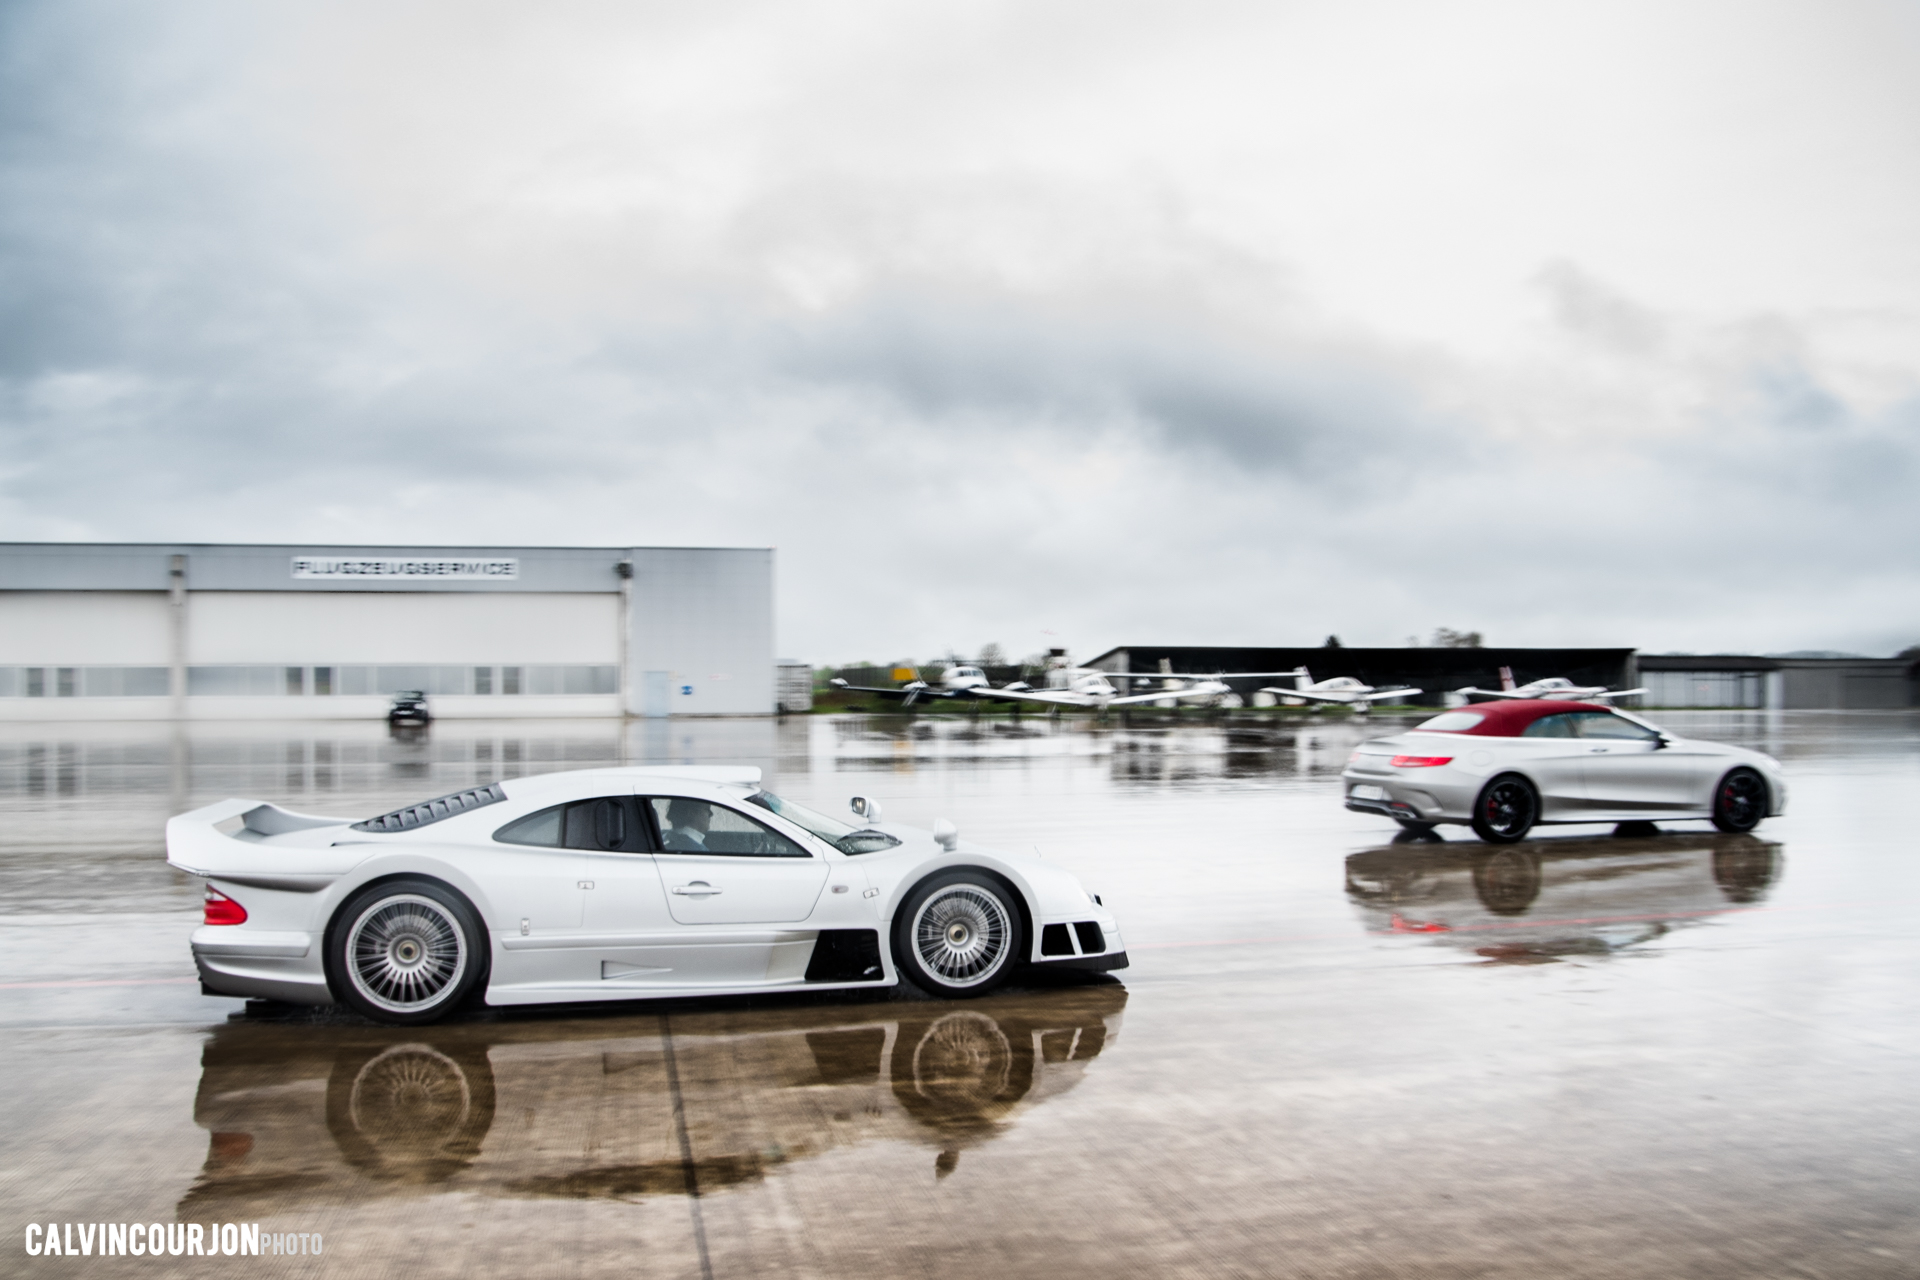 CLK GTR side face aeroport track - 2016 - Calvin Courjon Photographie